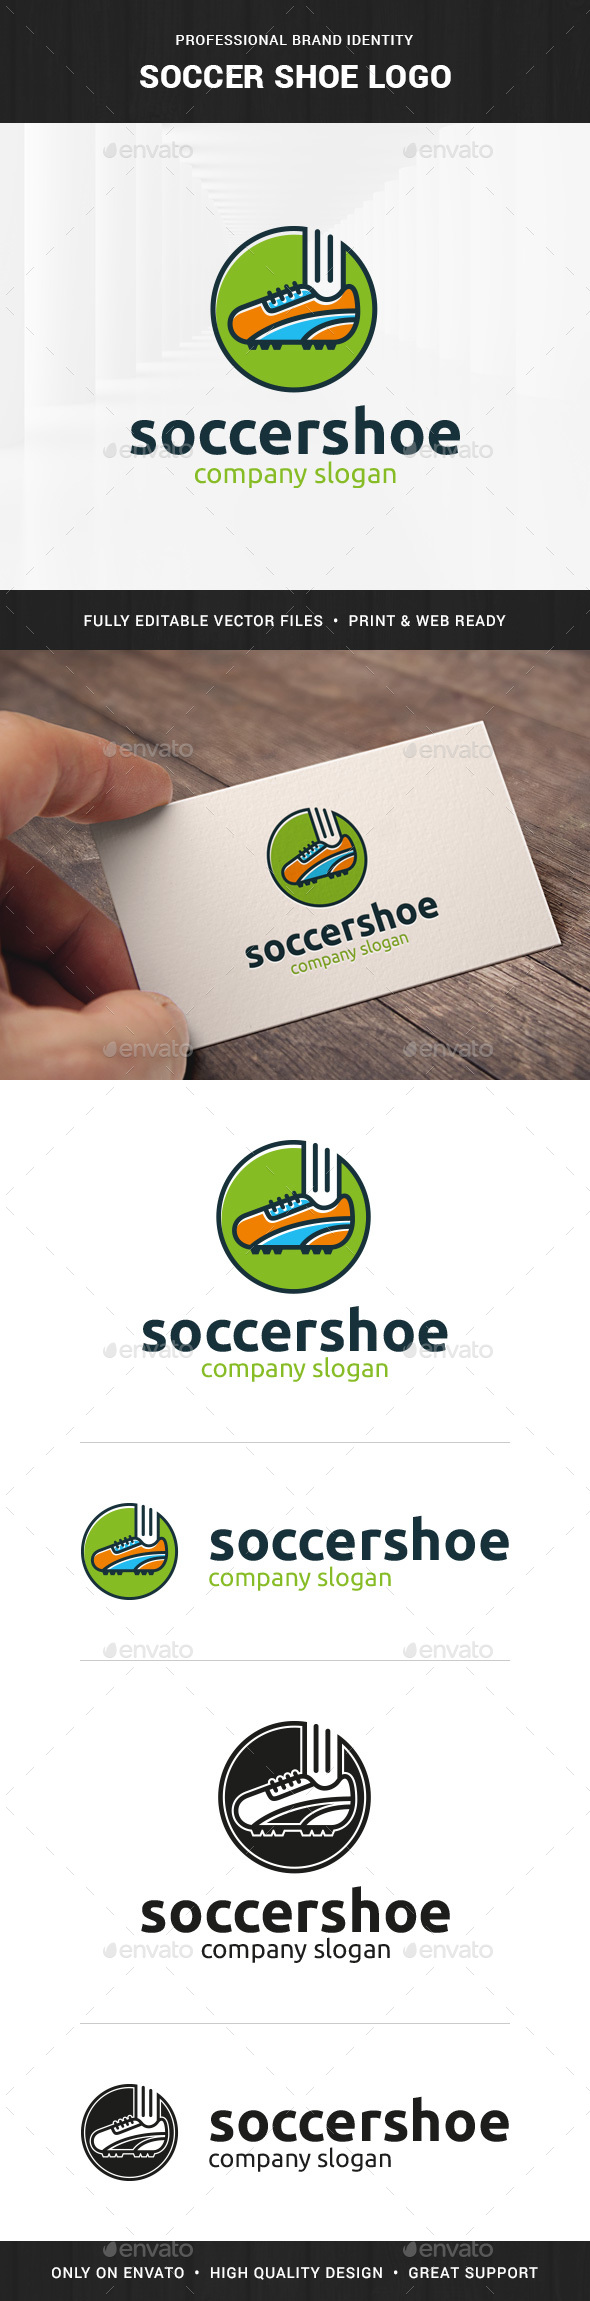 Soccer Shoe Logo Template - Objects Logo Templates